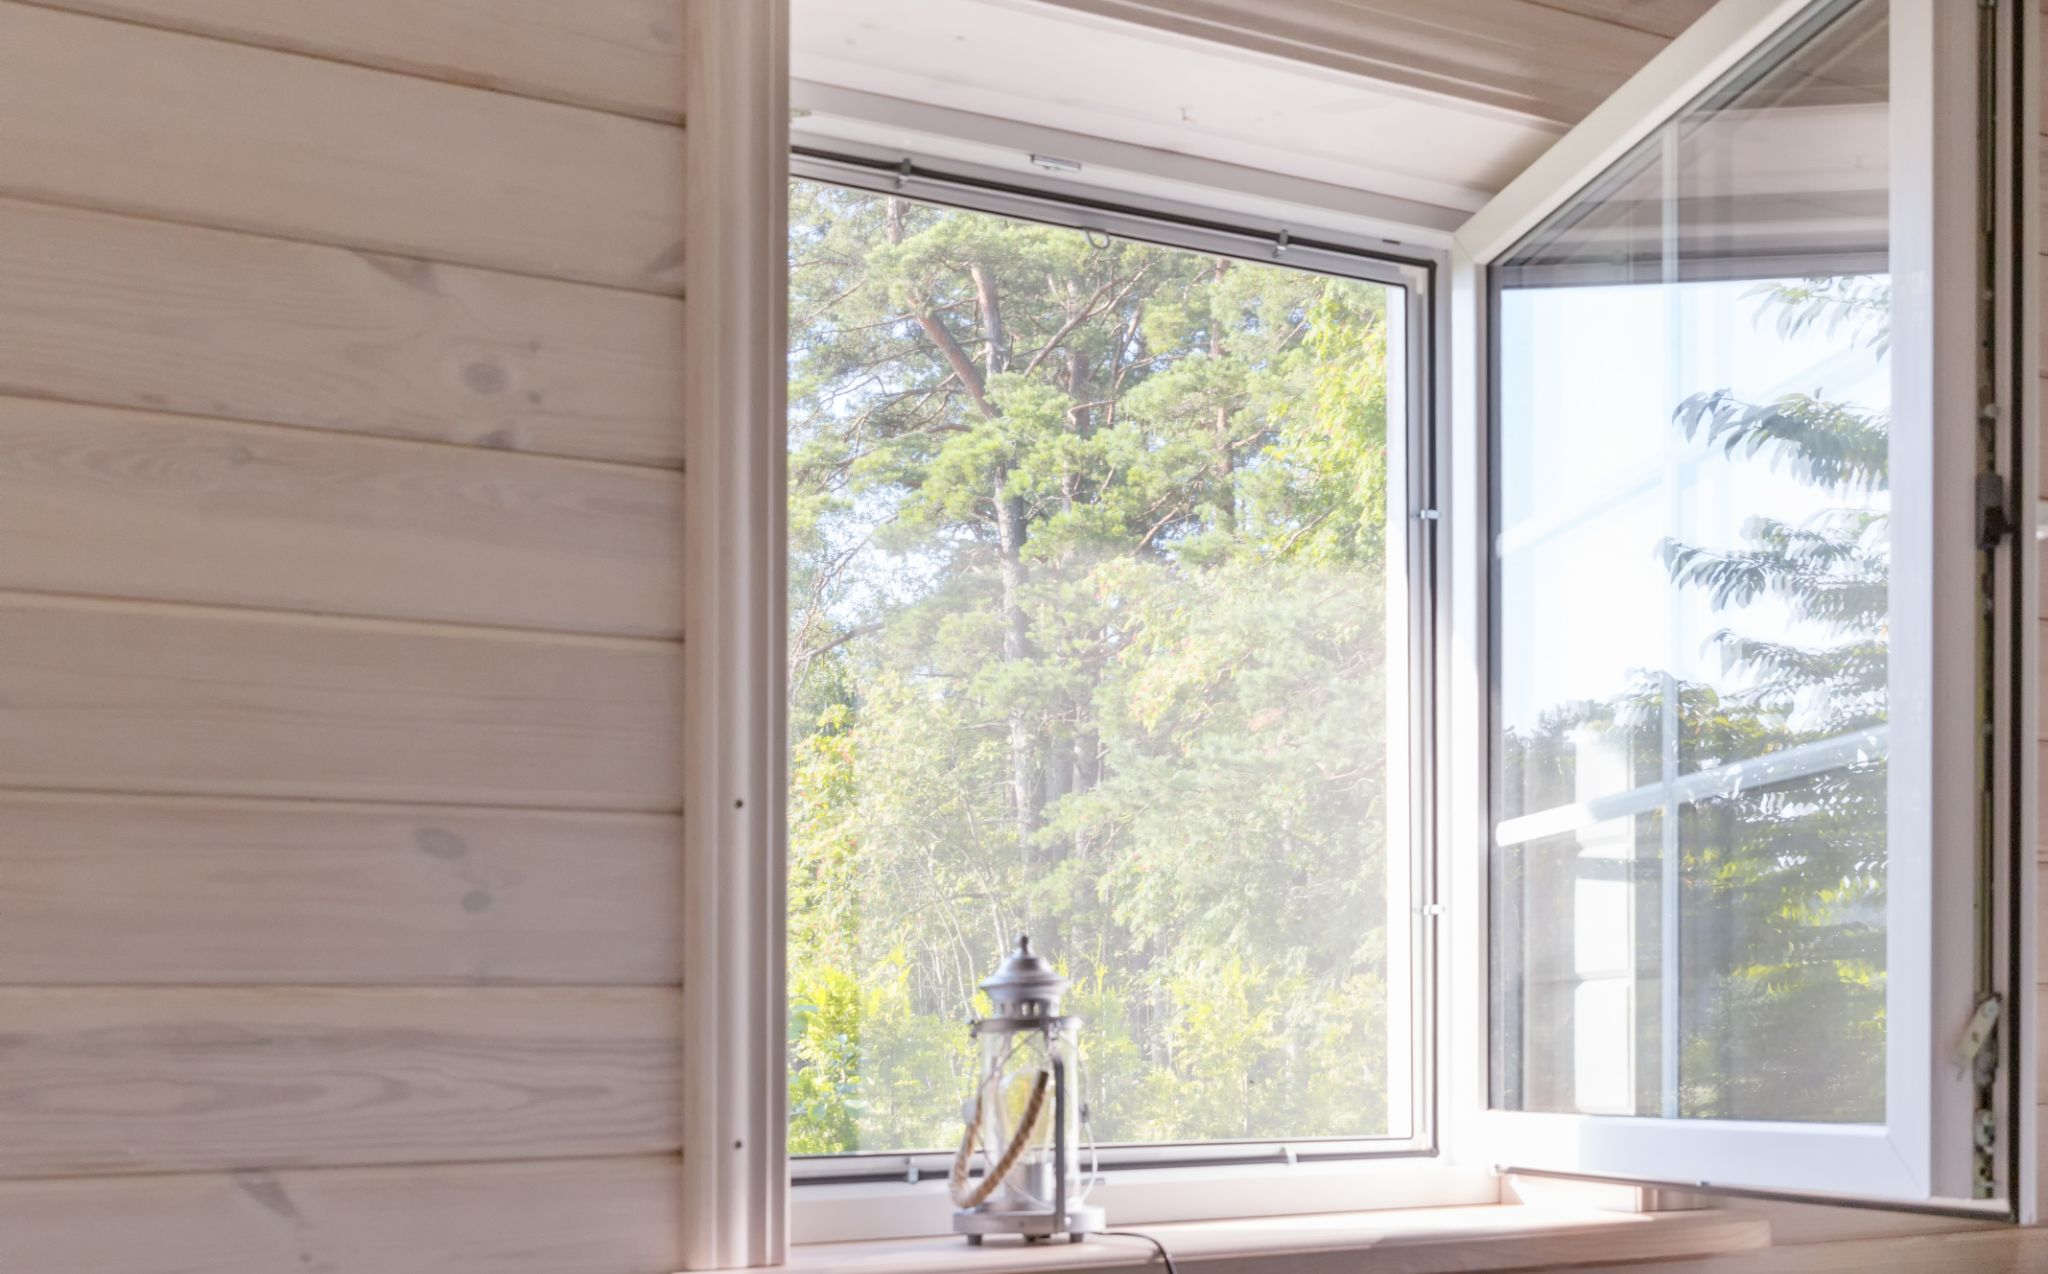 window open showing trees outside and small lantern on window sill